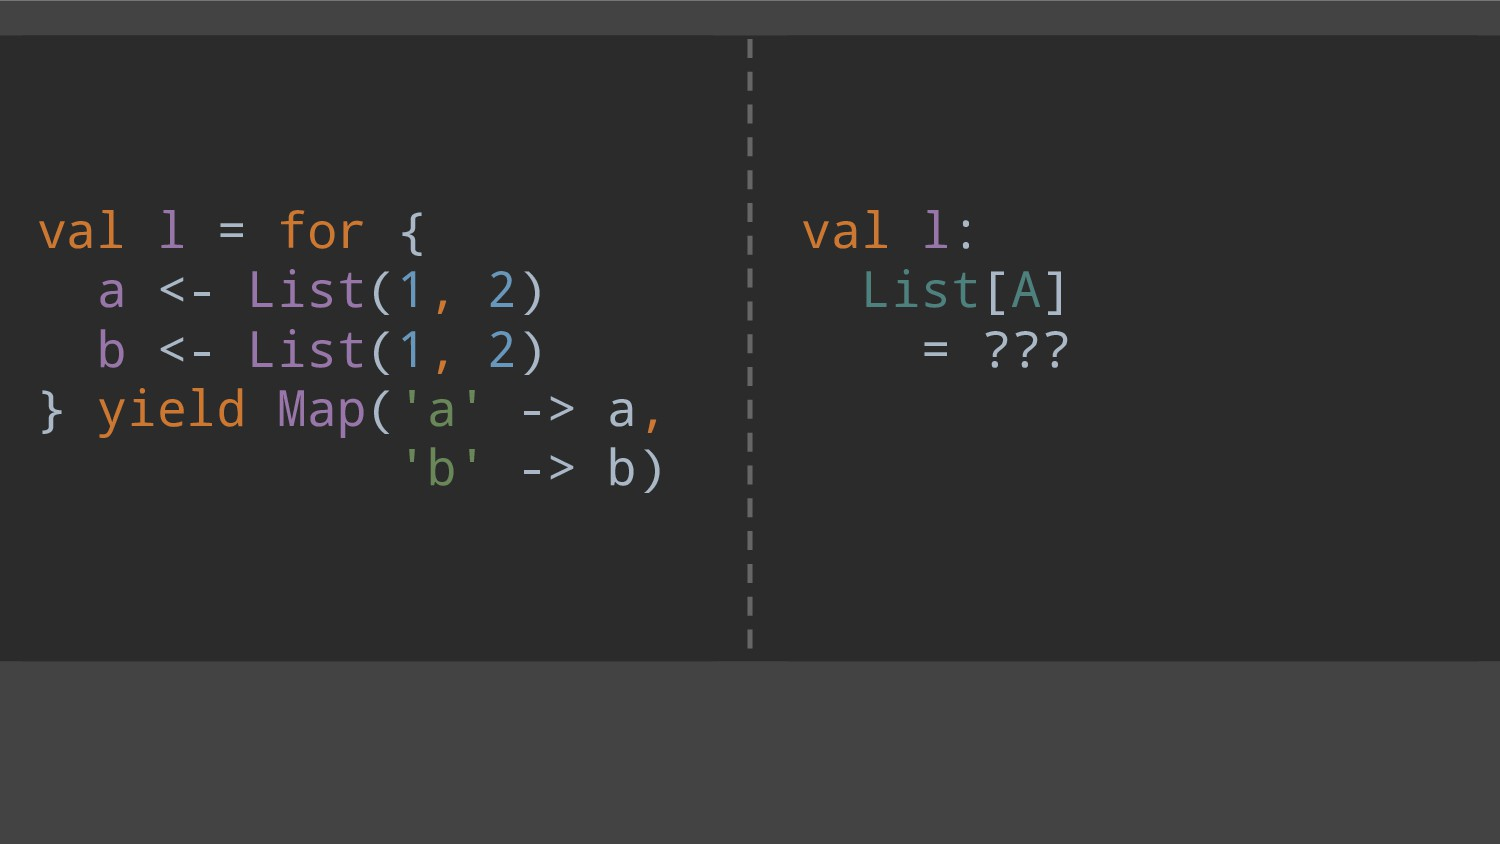 val l = for { a <- List(1, 2) b <- List(1, 2) }...